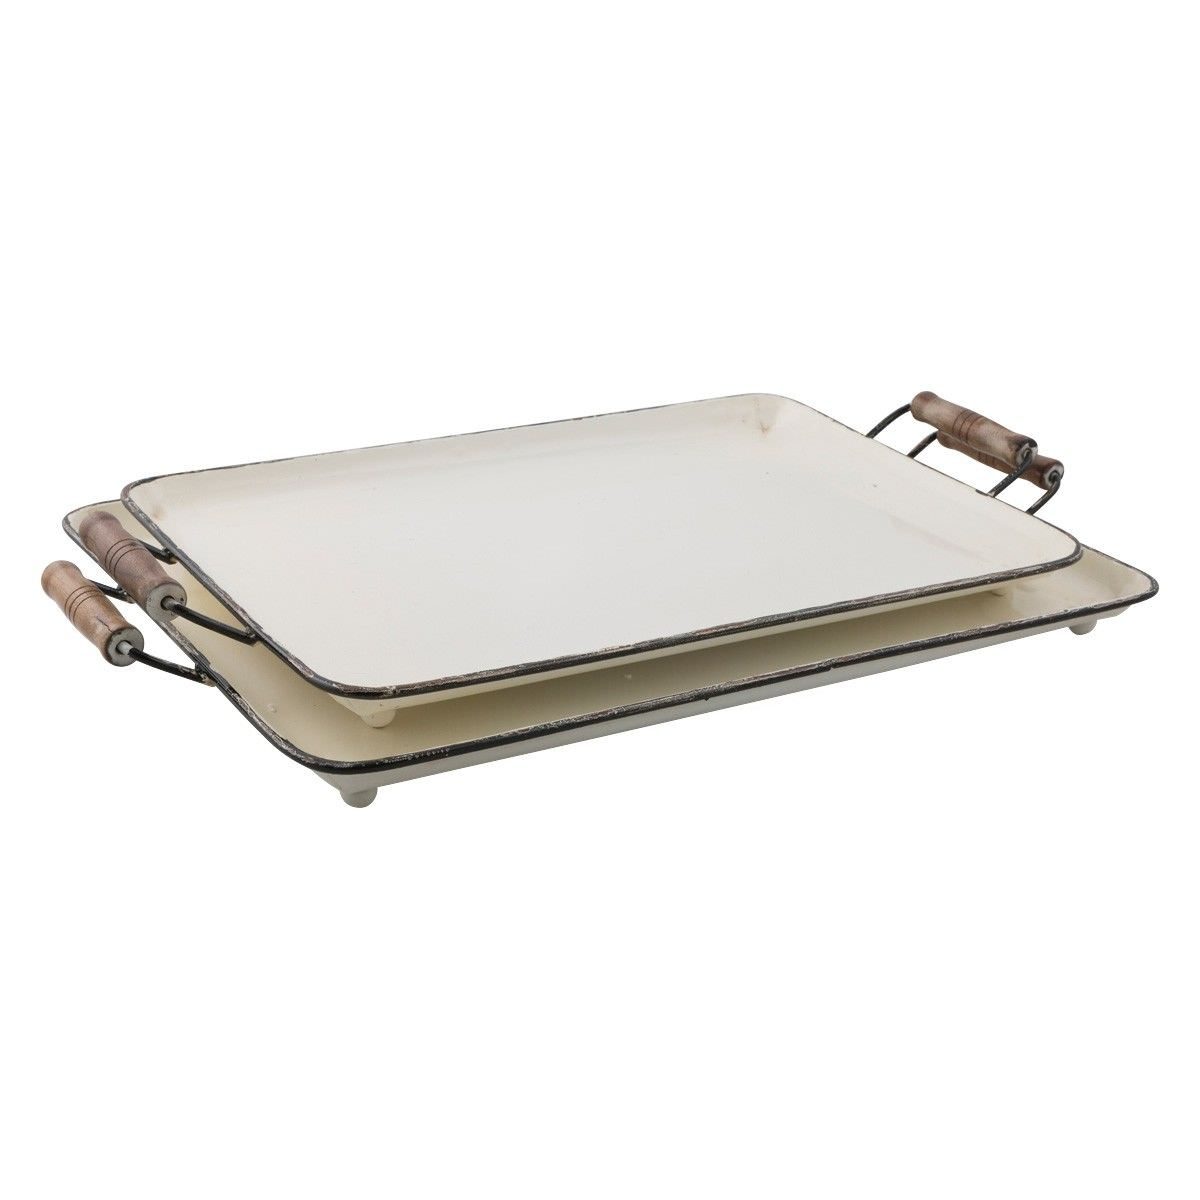 Nelson 2 Piece Distressed Iron Serving Tray Set